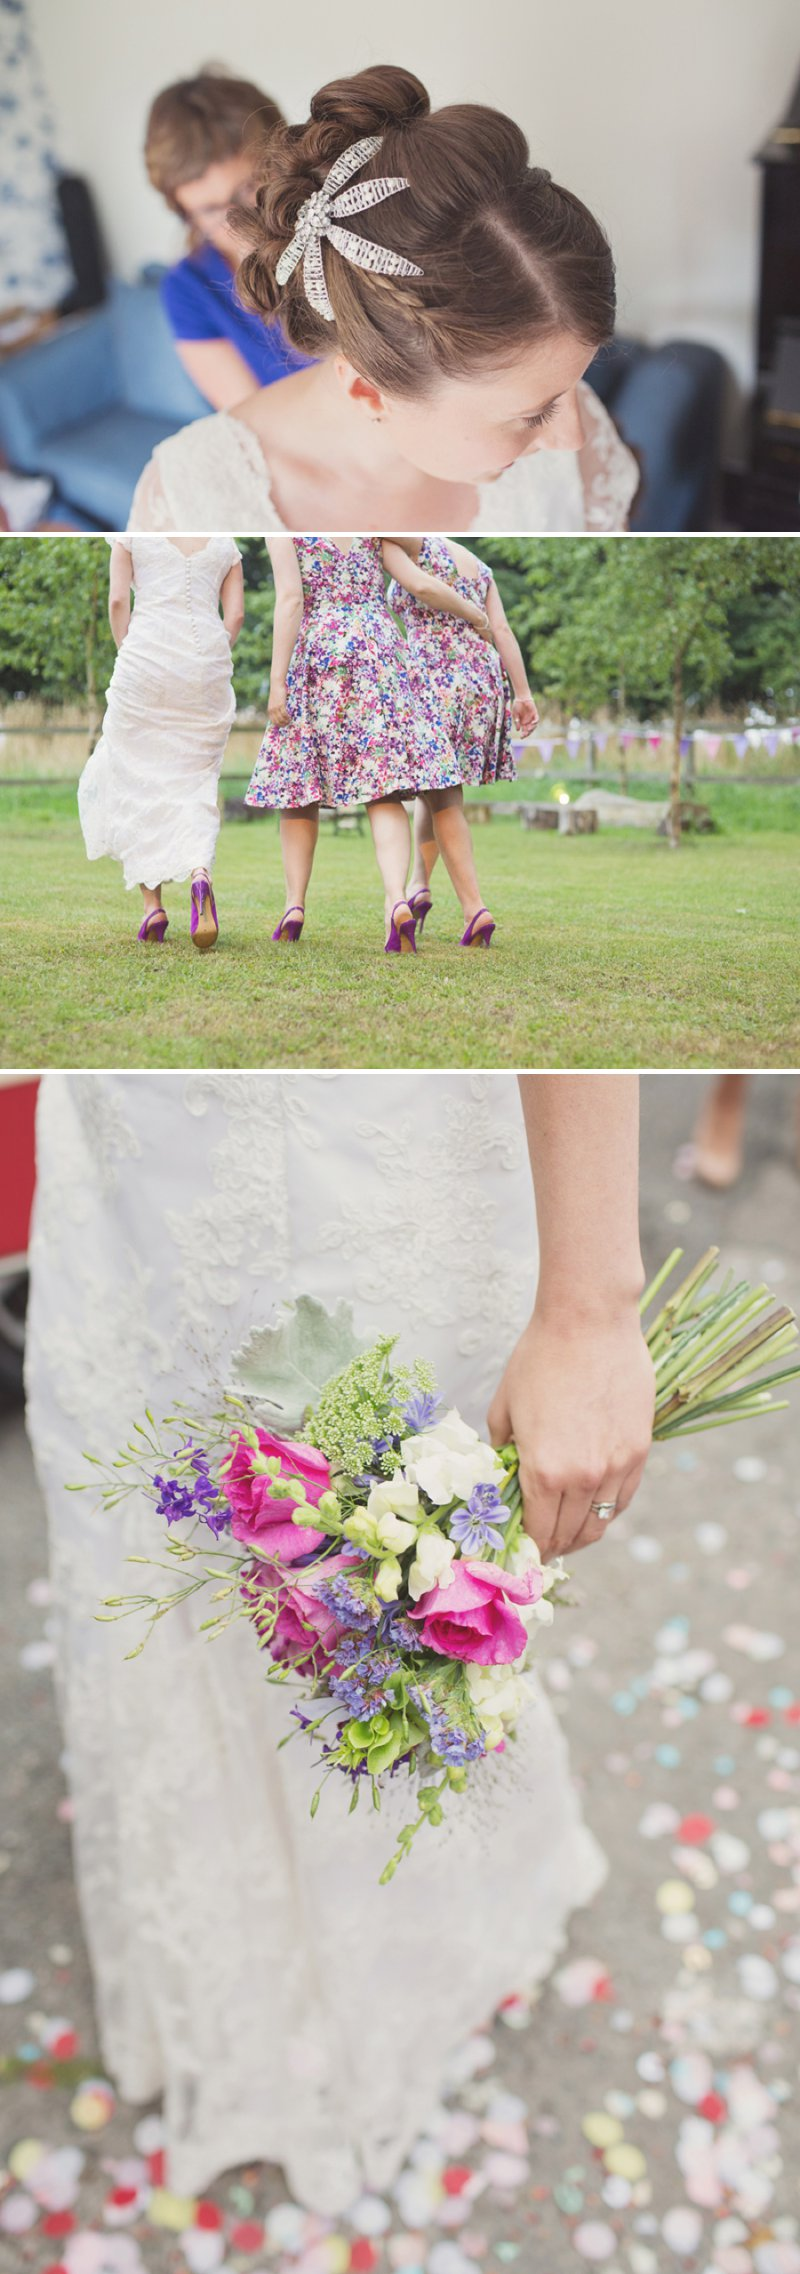 A Rustic Wedding At The Crown Inn Pishill With Bride In Bespoke Lace Gown And Groom In Tweed Suit From Clements And Church With Bunting And An Vintage VW Campervan Images From Cotton Candy Wedding Photography 2